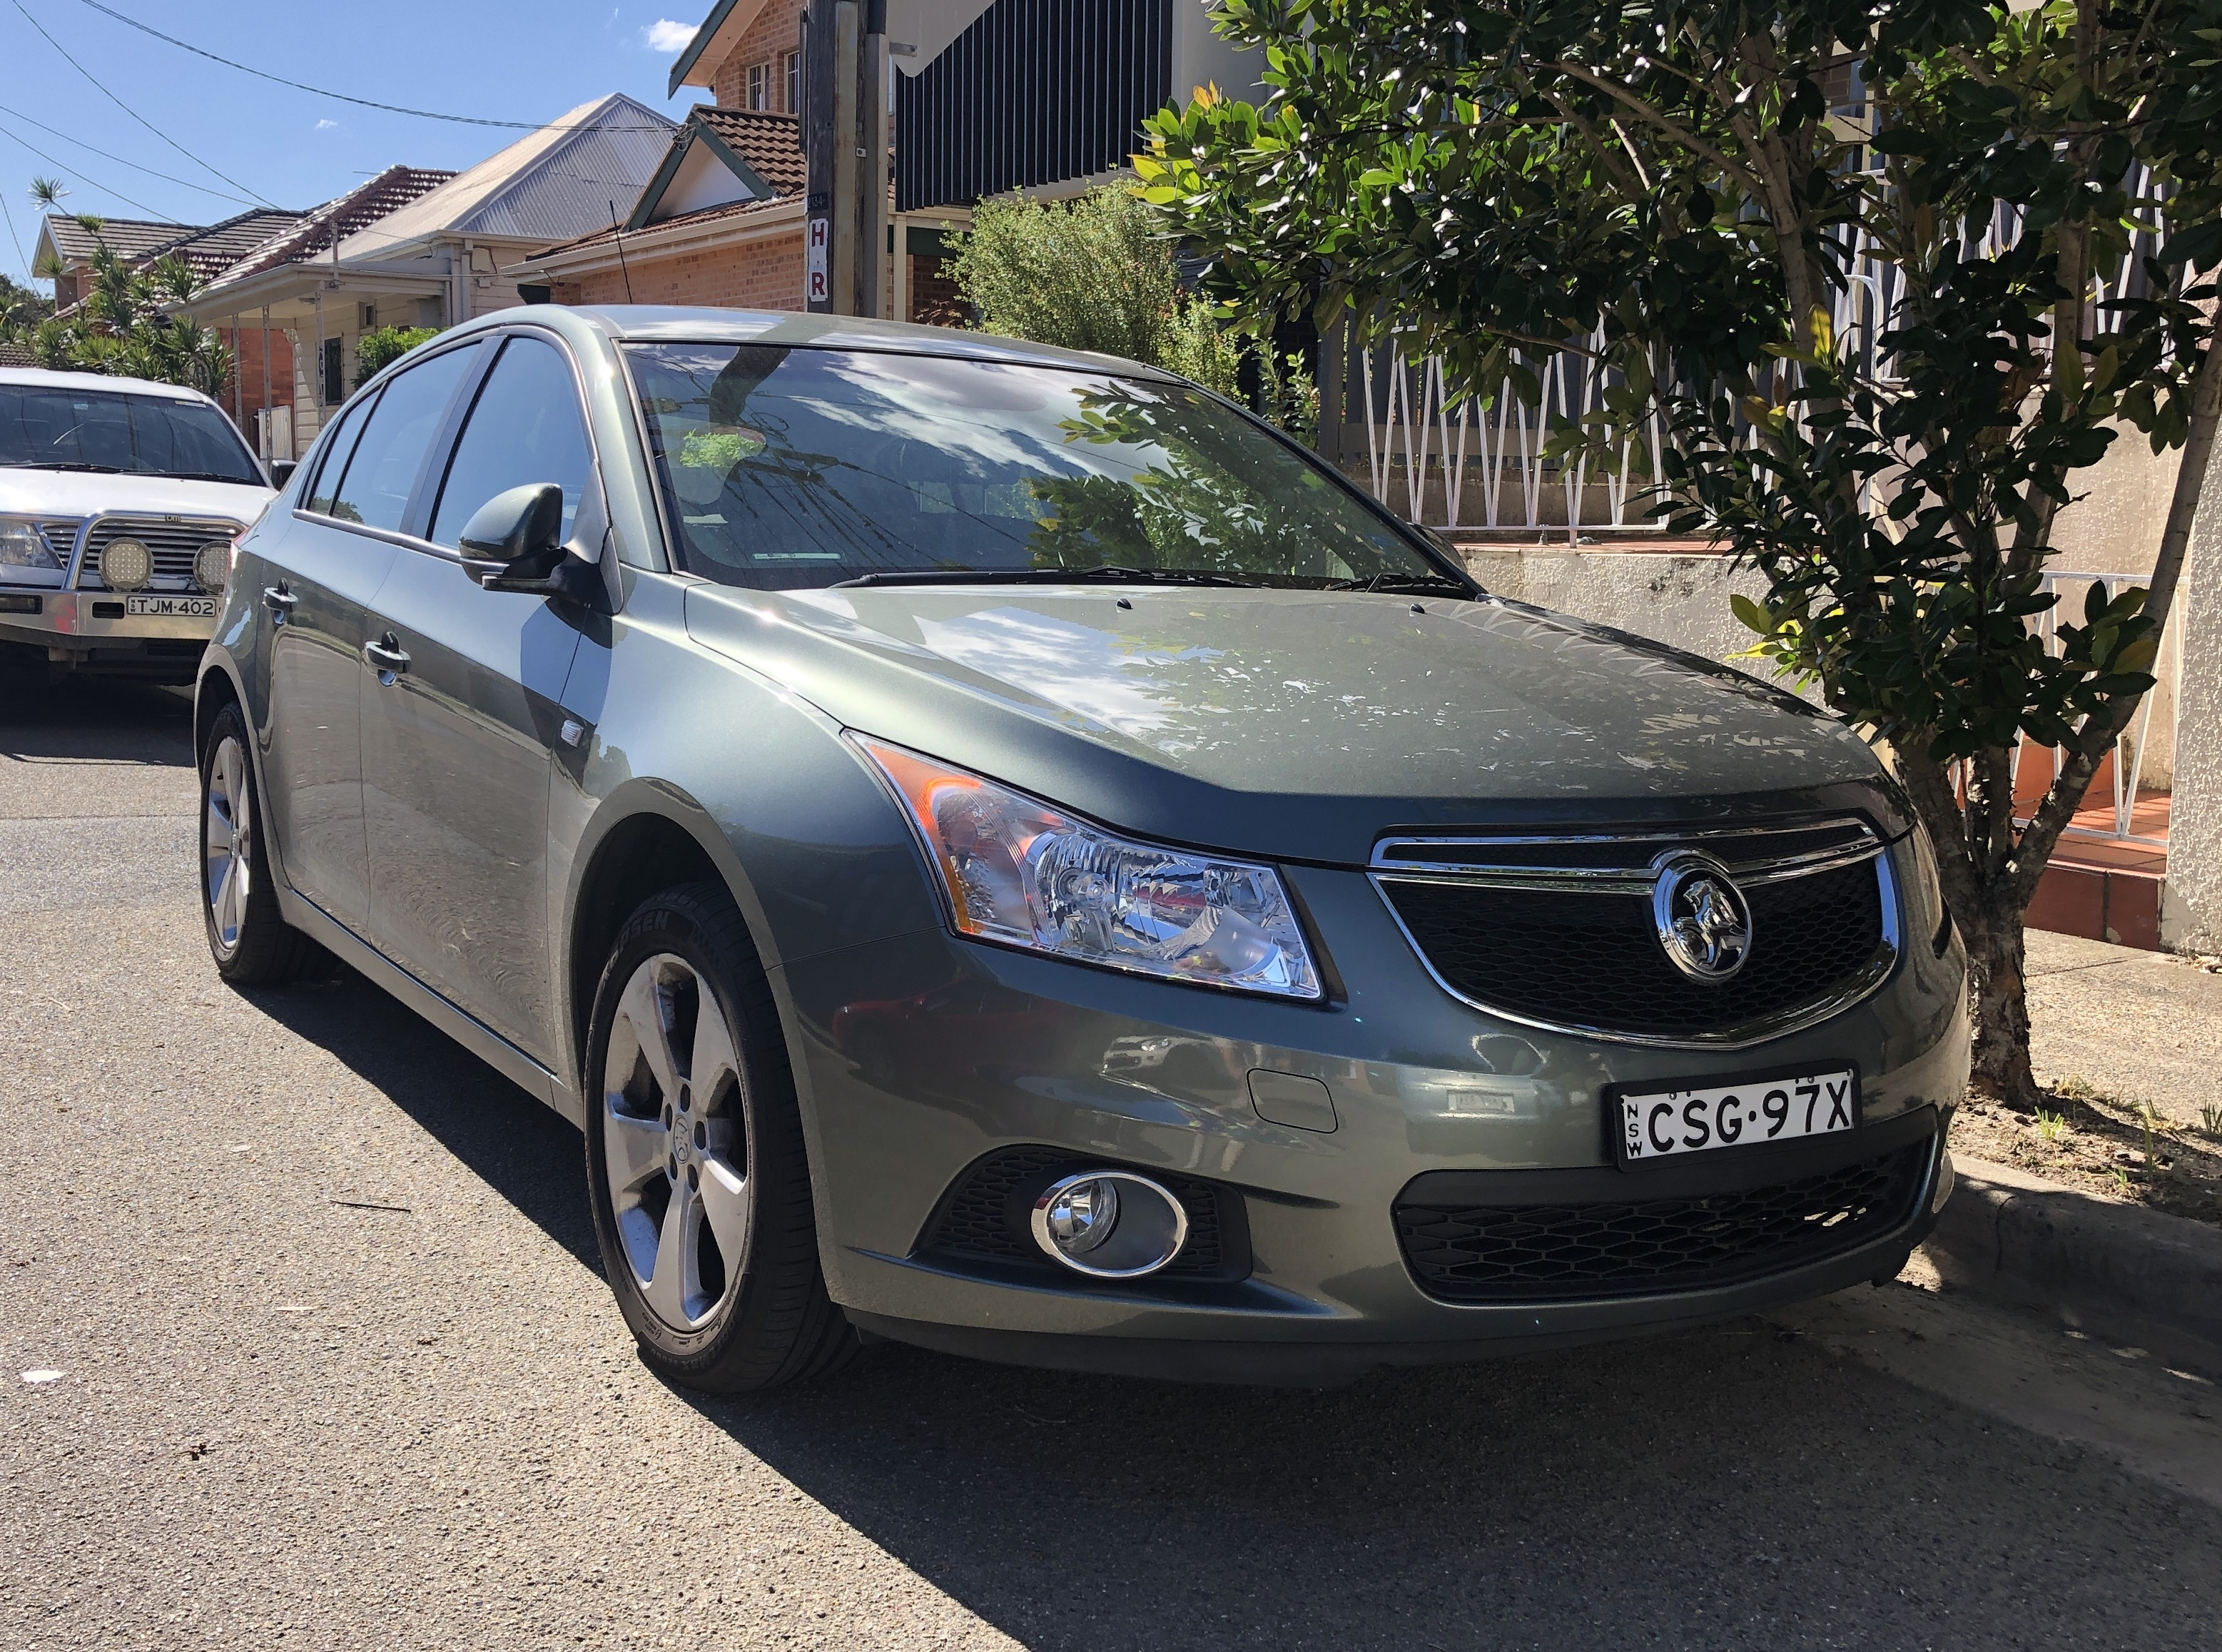 Picture of Fiona Gaye's 2014 Holden Cruze